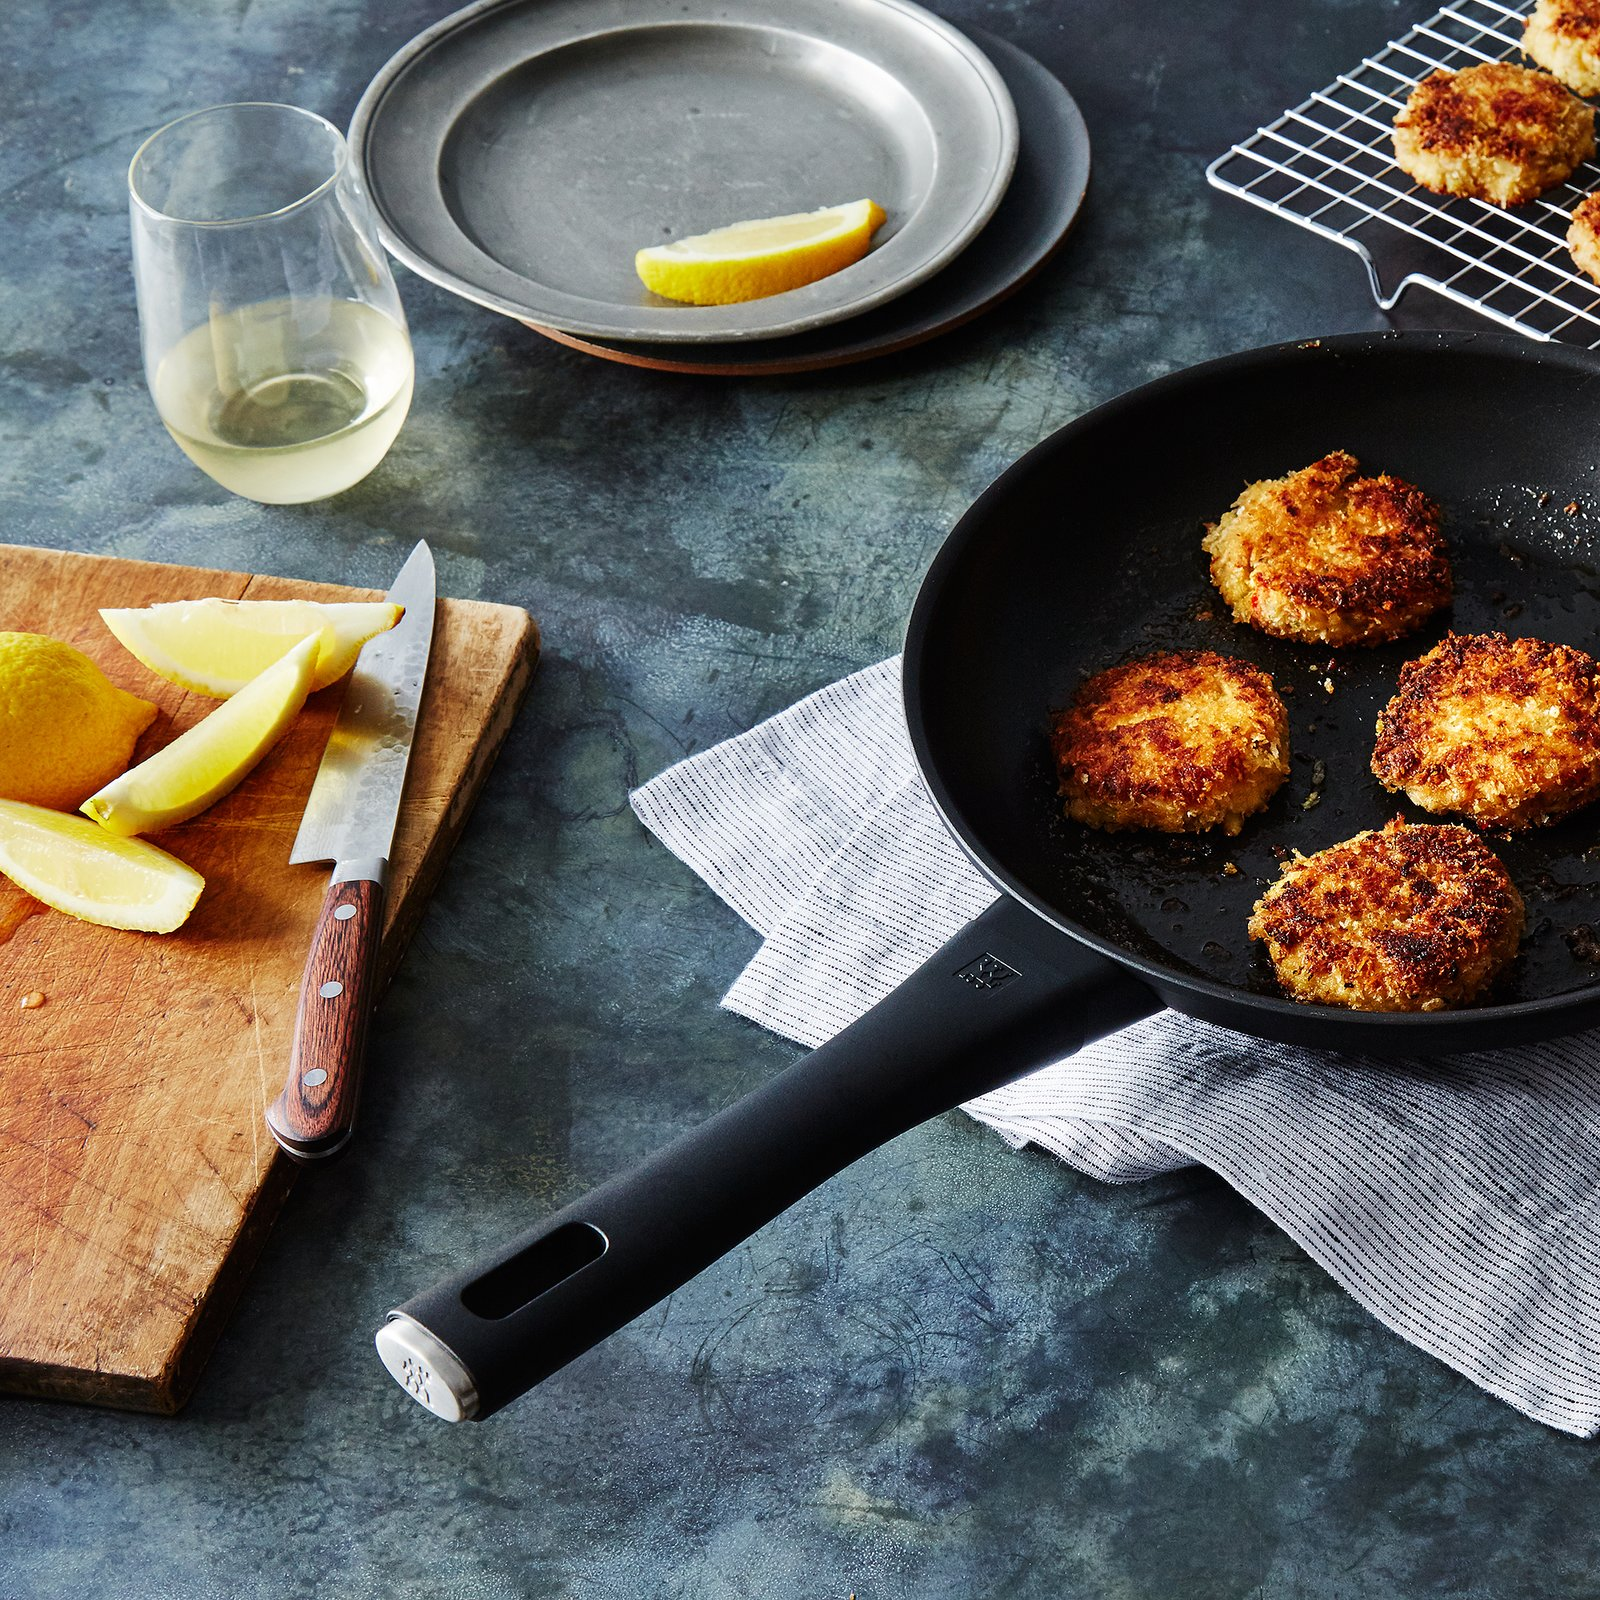 Photo 1 of 1 in Zwilling Madura Plus Nonstick Fry Pan